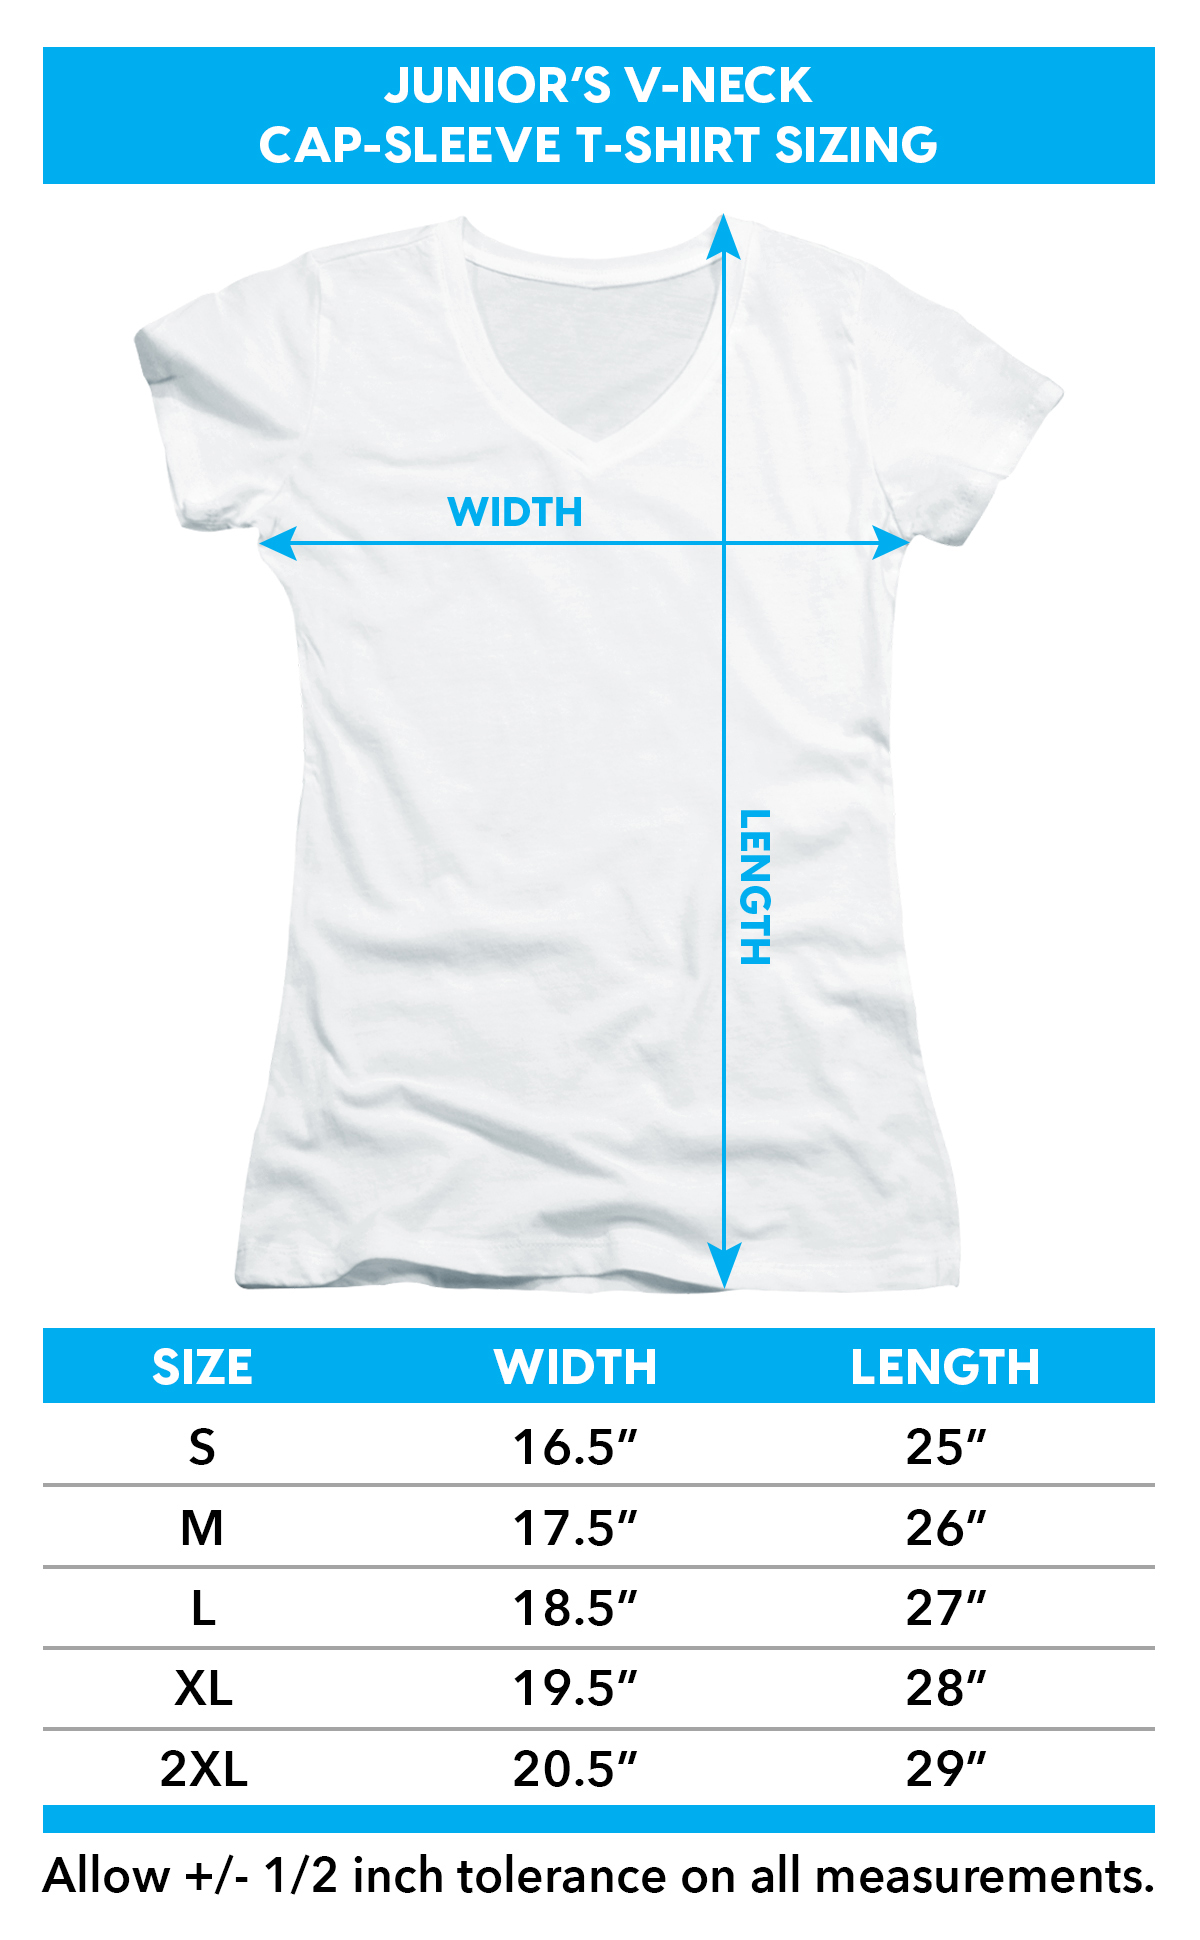 sizing chart for Star Trek Cats Girls V Neck T-Shirt - Five Year Nap TRV-CBS1055-JV